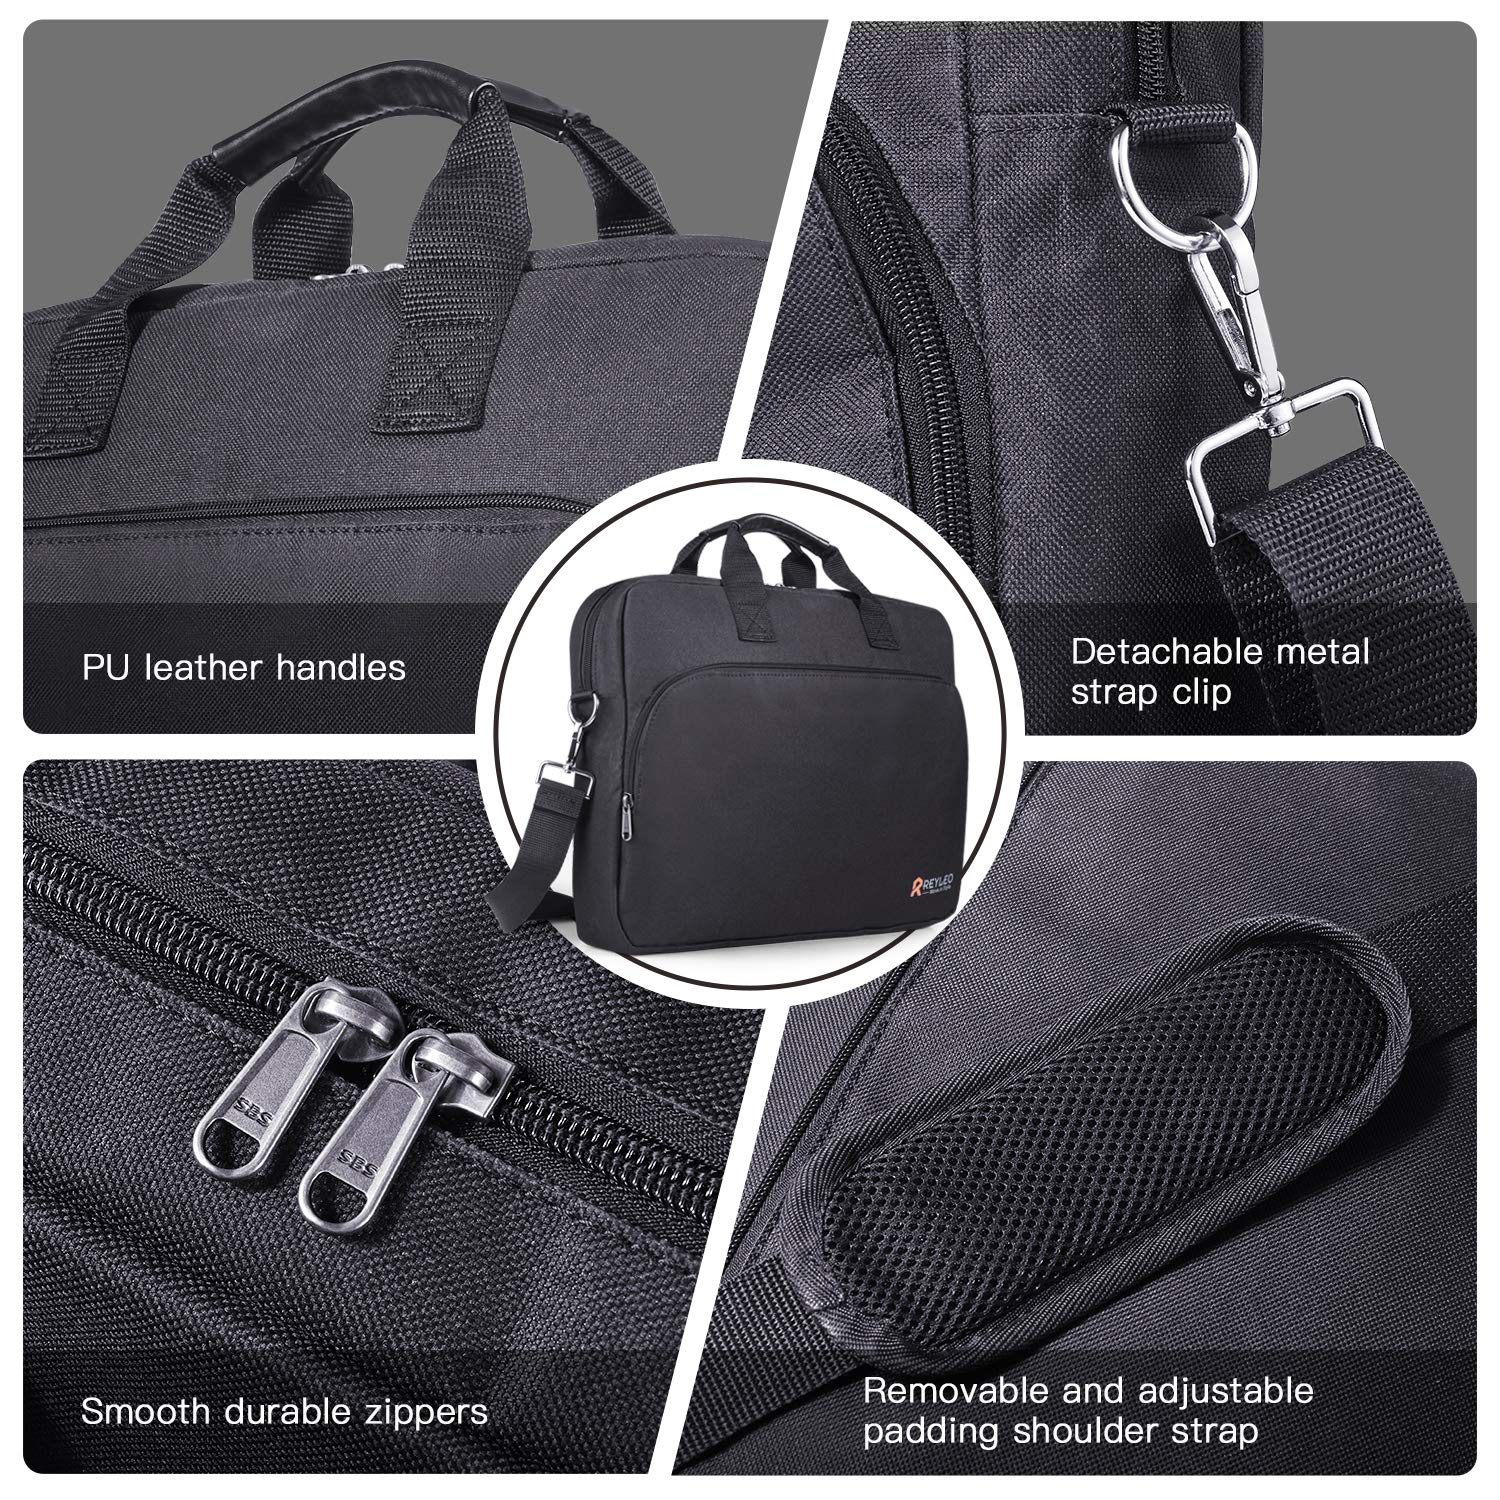 REYLEO 15.6 Inch Laptop Bag Travel Briefcase with Luggage Strap Water Resistant Shoulder Bag Business Messenger Briefcases for Men and Women Fits Laptop Computer Tablet, LCB1B by REYLEO (Image #3)